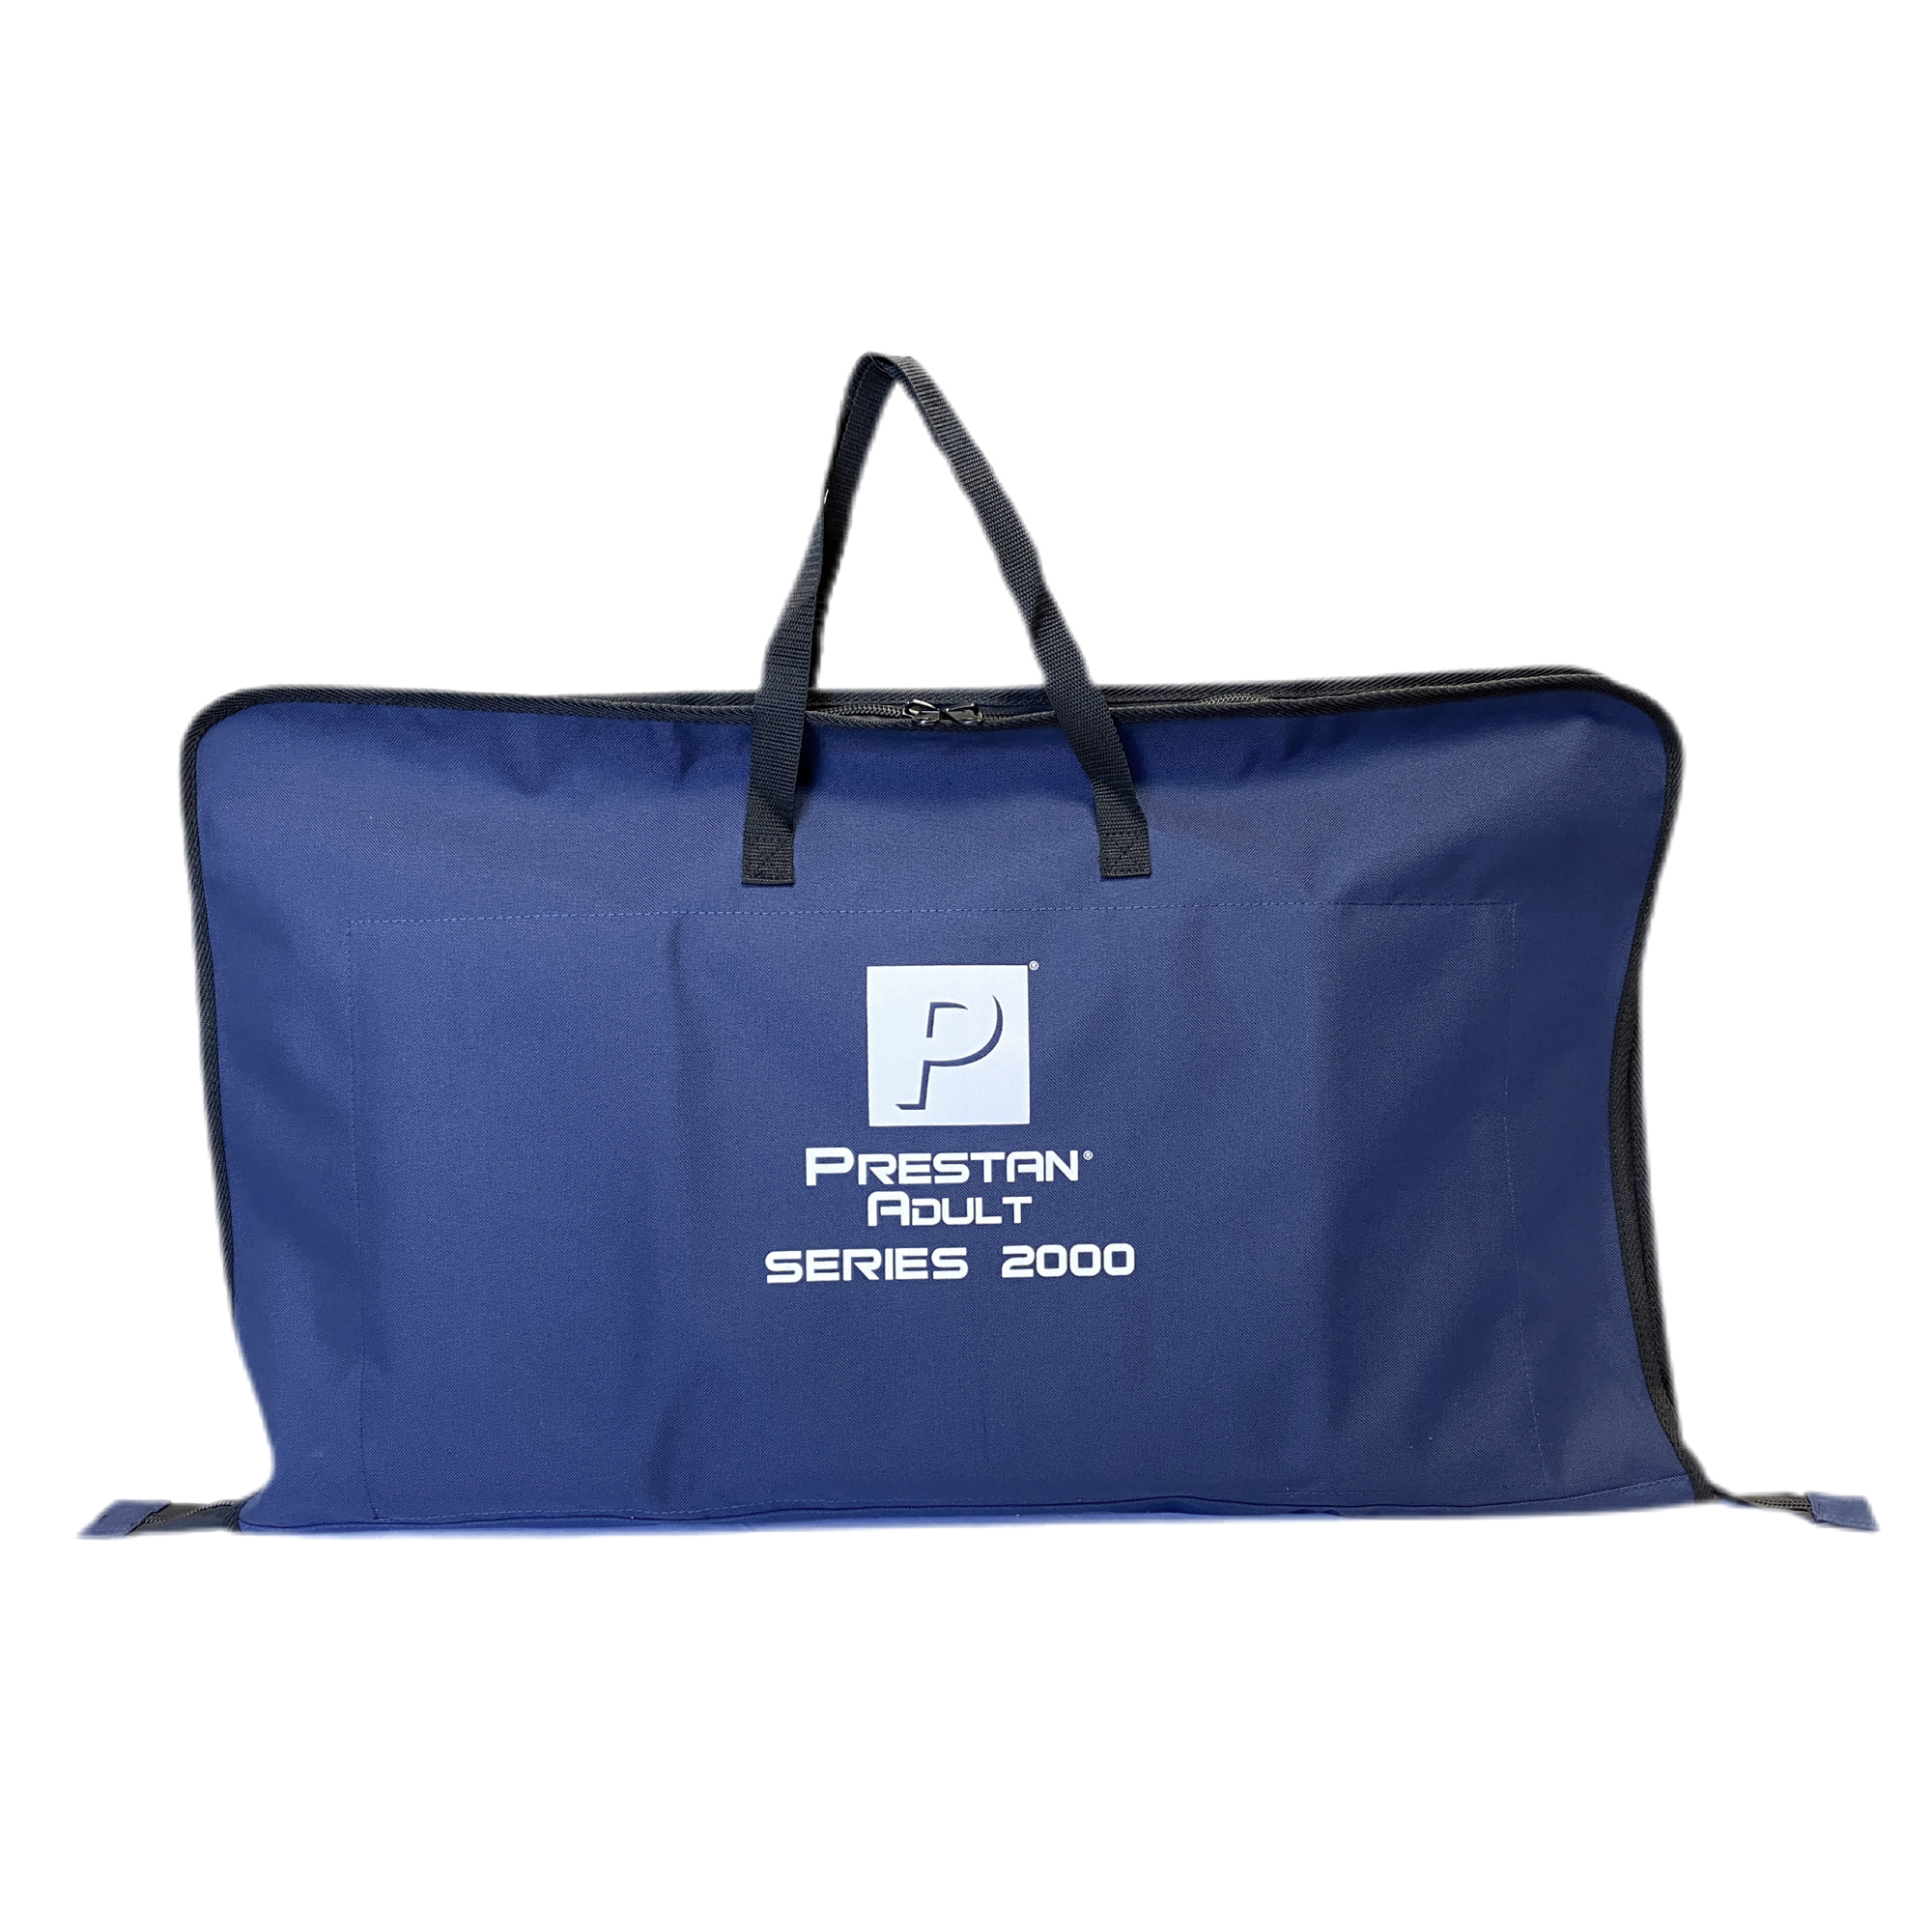 Blue Carry Bag for the PRESTAN Professional Adult Series 2000 Manikin Single.